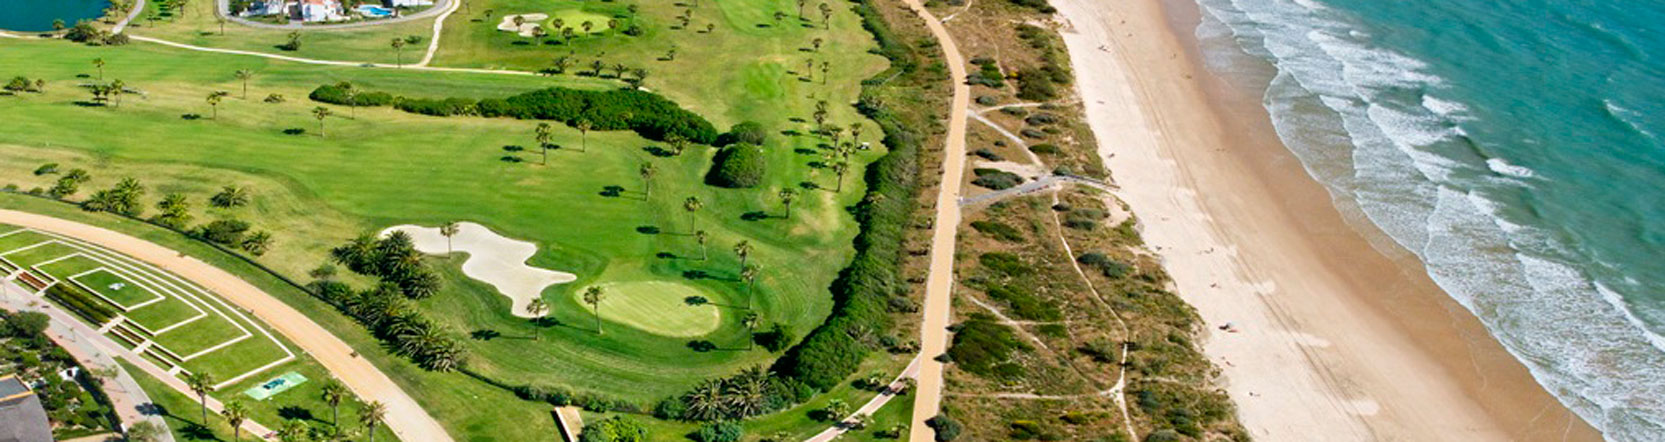 Aerial view of Costa Ballena Golf showing its proximity to the beach